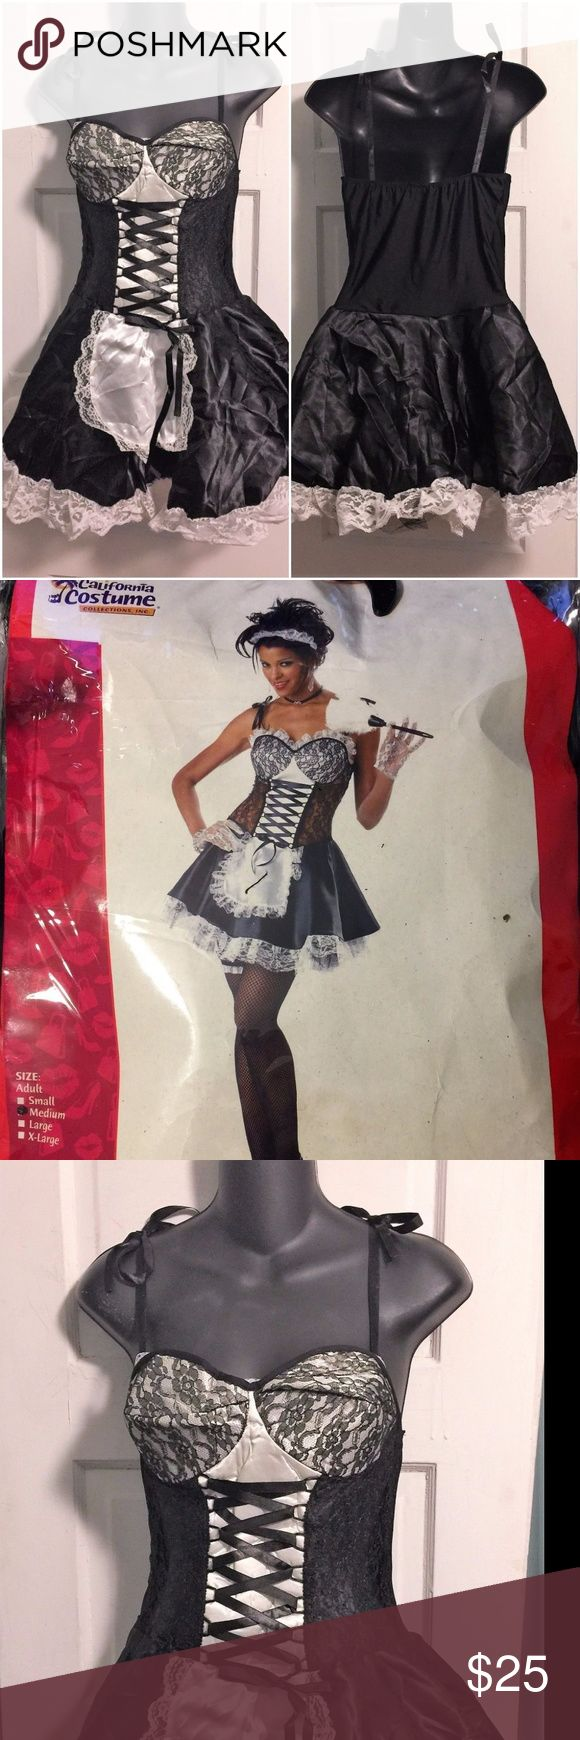 "California Costume French Maid ""Fi Fi Le Flirt""- M This adorable costume is perfect for Halloween or to spice things up in the bedroom! This ""Fi Fi Le Flirt"" French Maid costume includes: Solid Black Dress with Attached Apron and Tulle underskirt petticoat, Head ruffle (headband), and Garter. Will also include a feather duster prop for free! Size Medium.  Dress has built-in light support cups. California Costumes Intimates & Sleepwear"